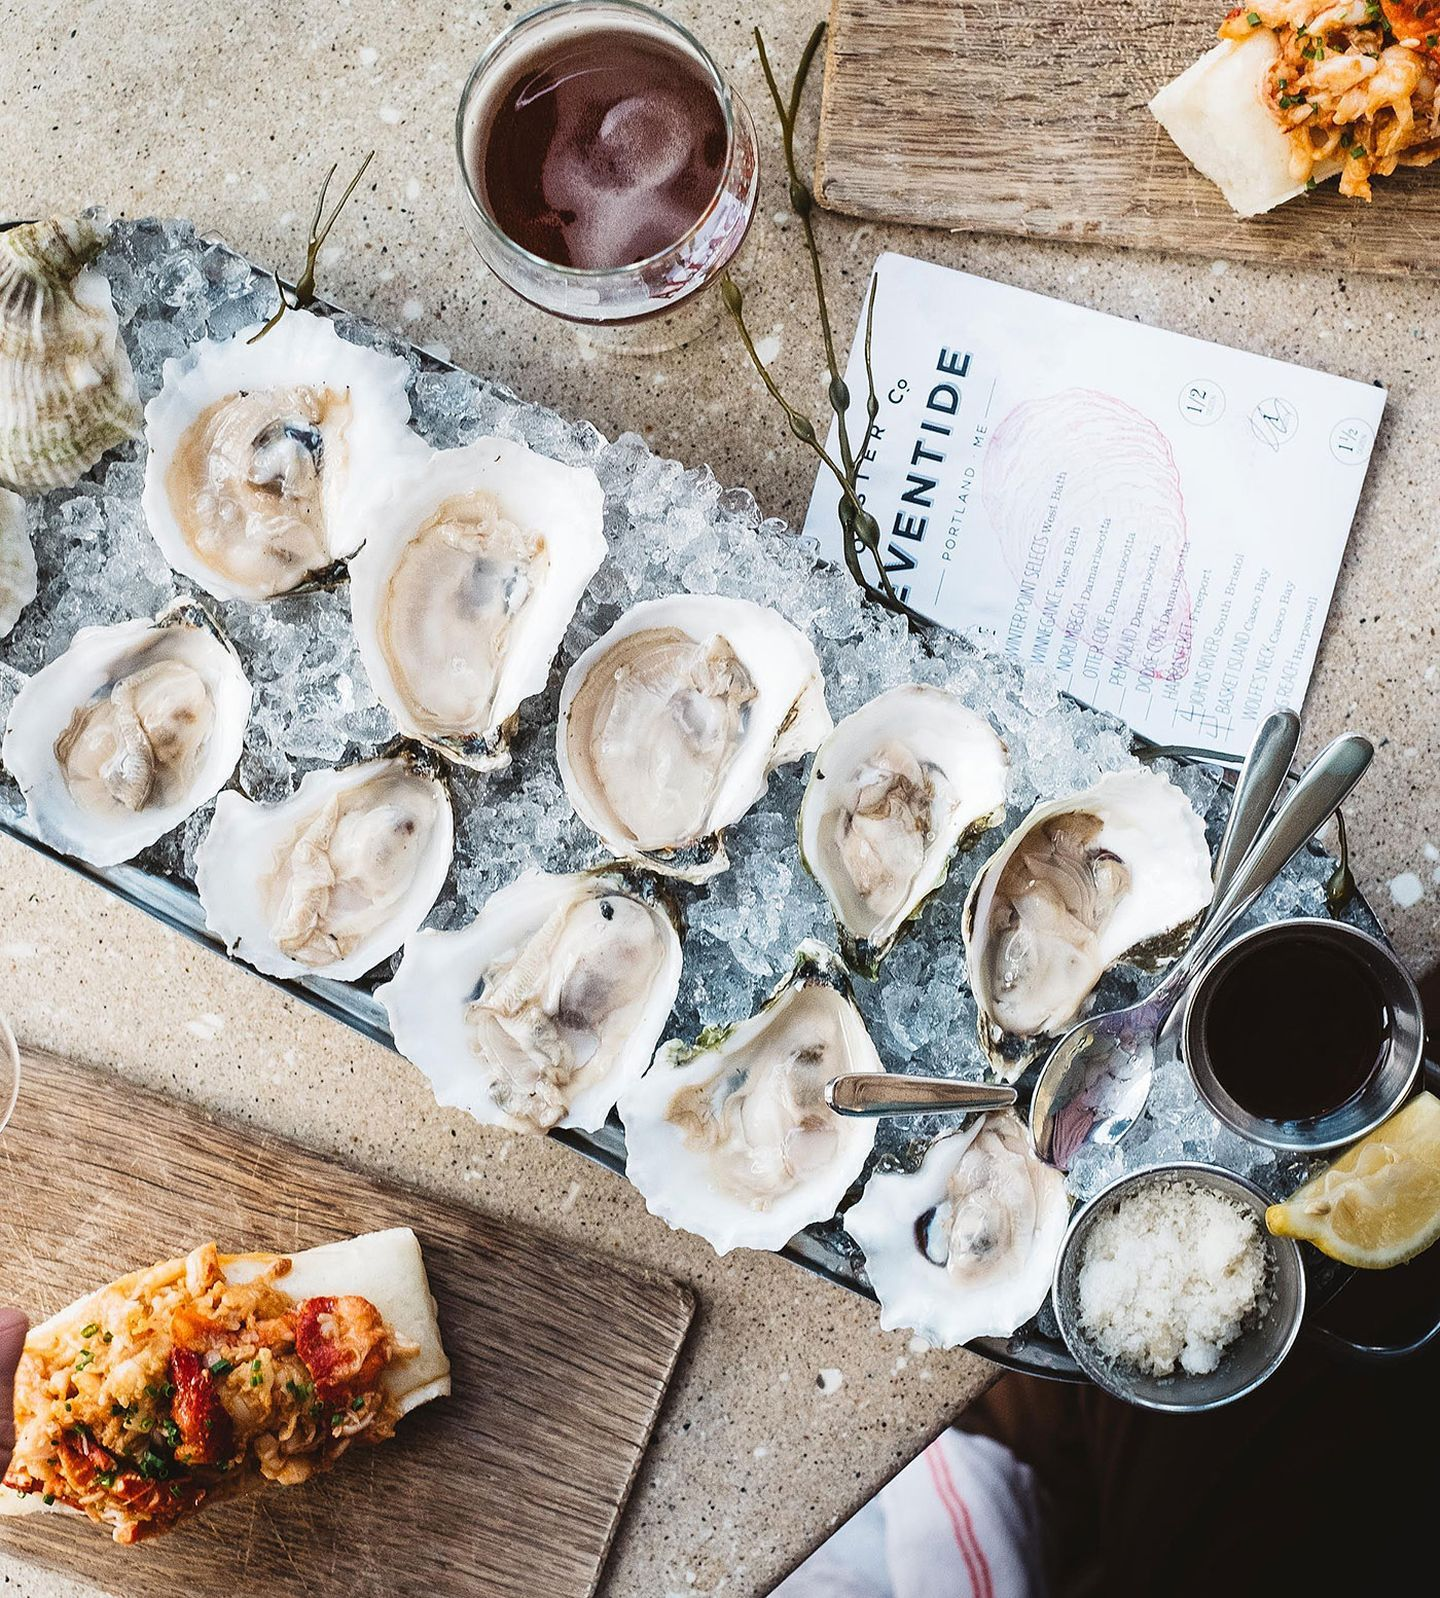 Where To Eat And What To Order In Portland Maine The Boston Globe Eat Food Rose Recipes